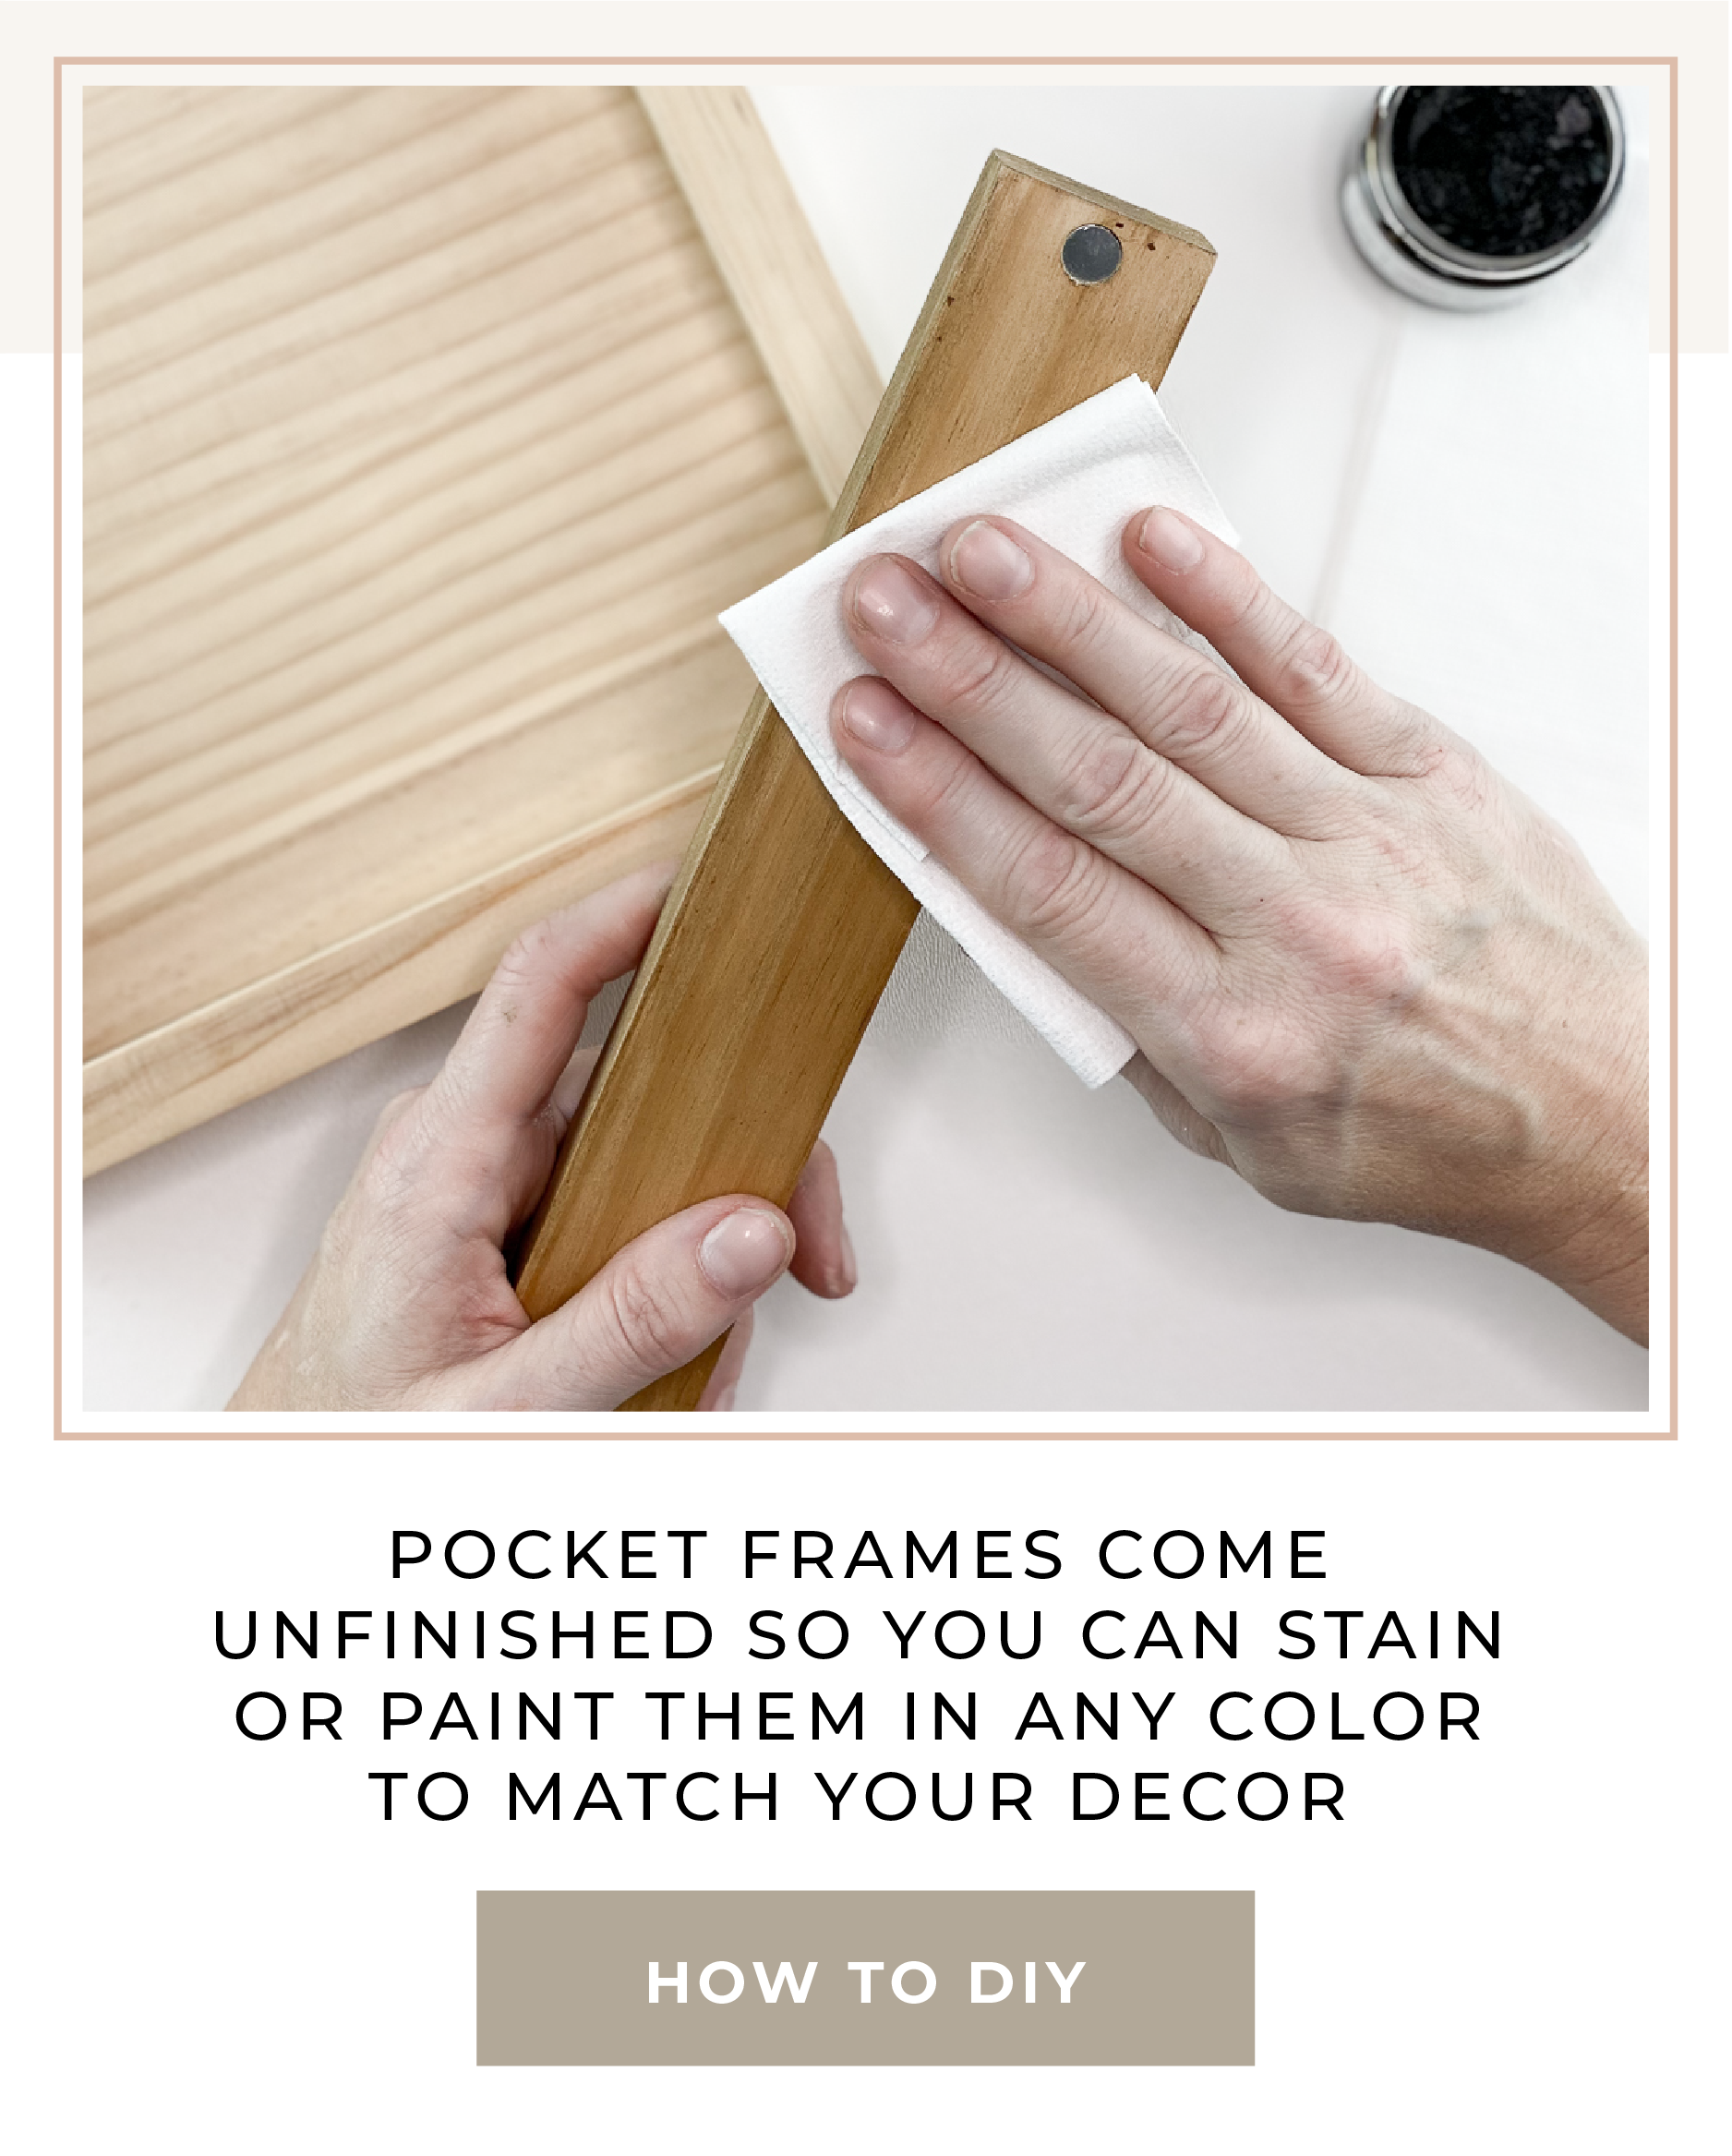 Pocket Frames come unfinished so you can stain or paint them in any color to match your decor. Click for How to DIY your Frame